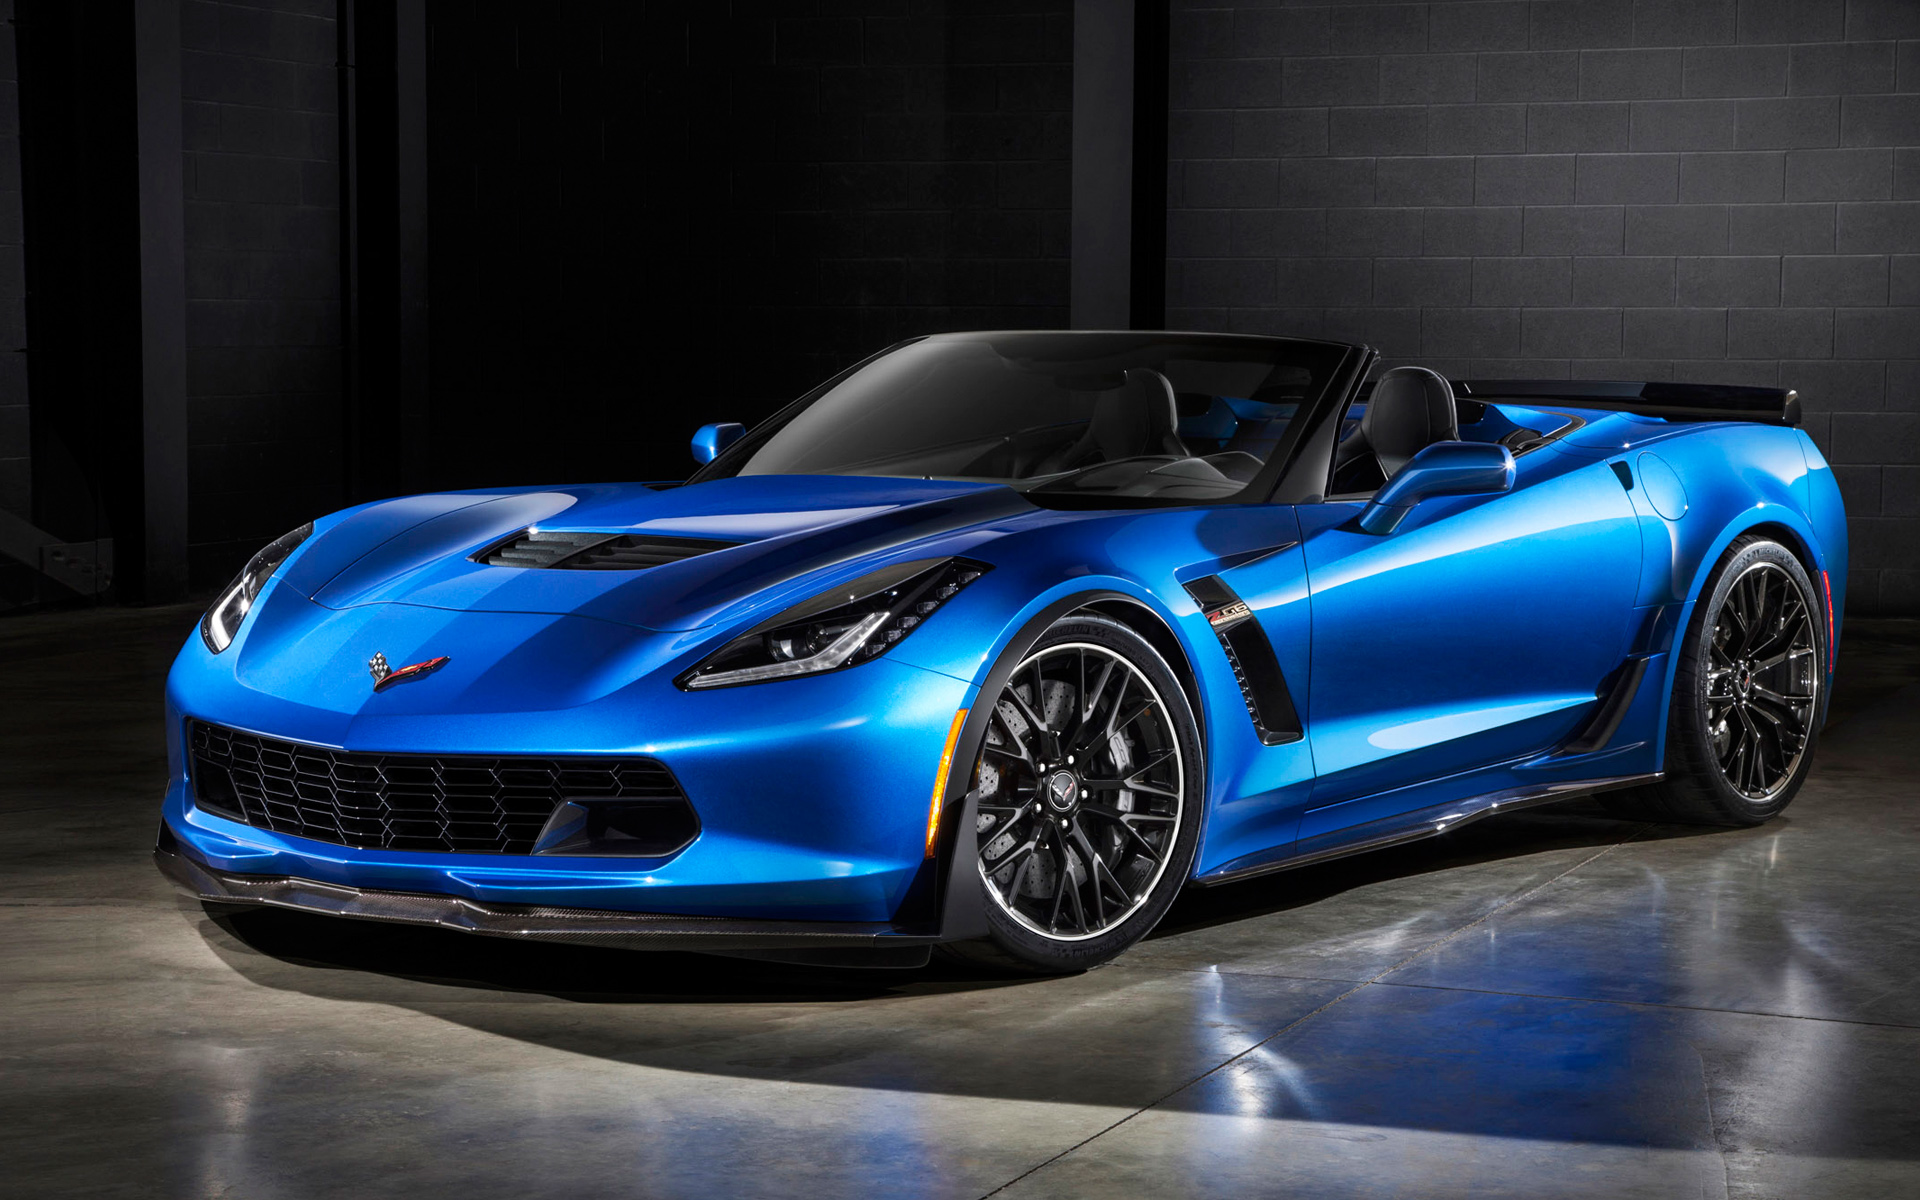 Chevrolet Corvette Z06 Convertible 2015 Wallpapers HD Wallpapers 1920x1200